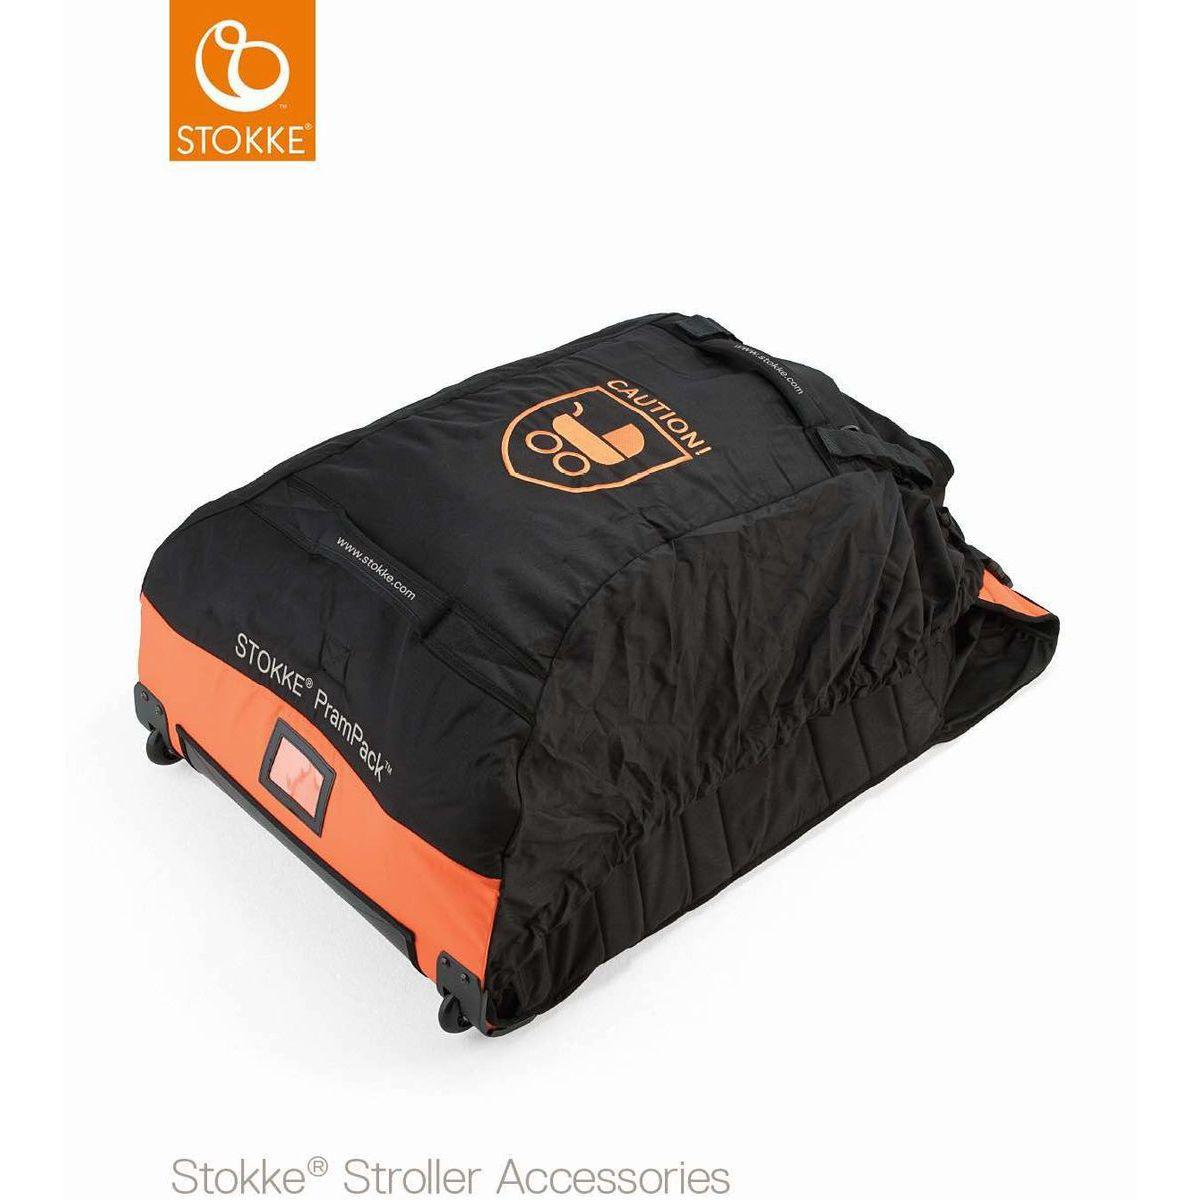 Sac transport poussette PRAMPACK Stokke orange-noir